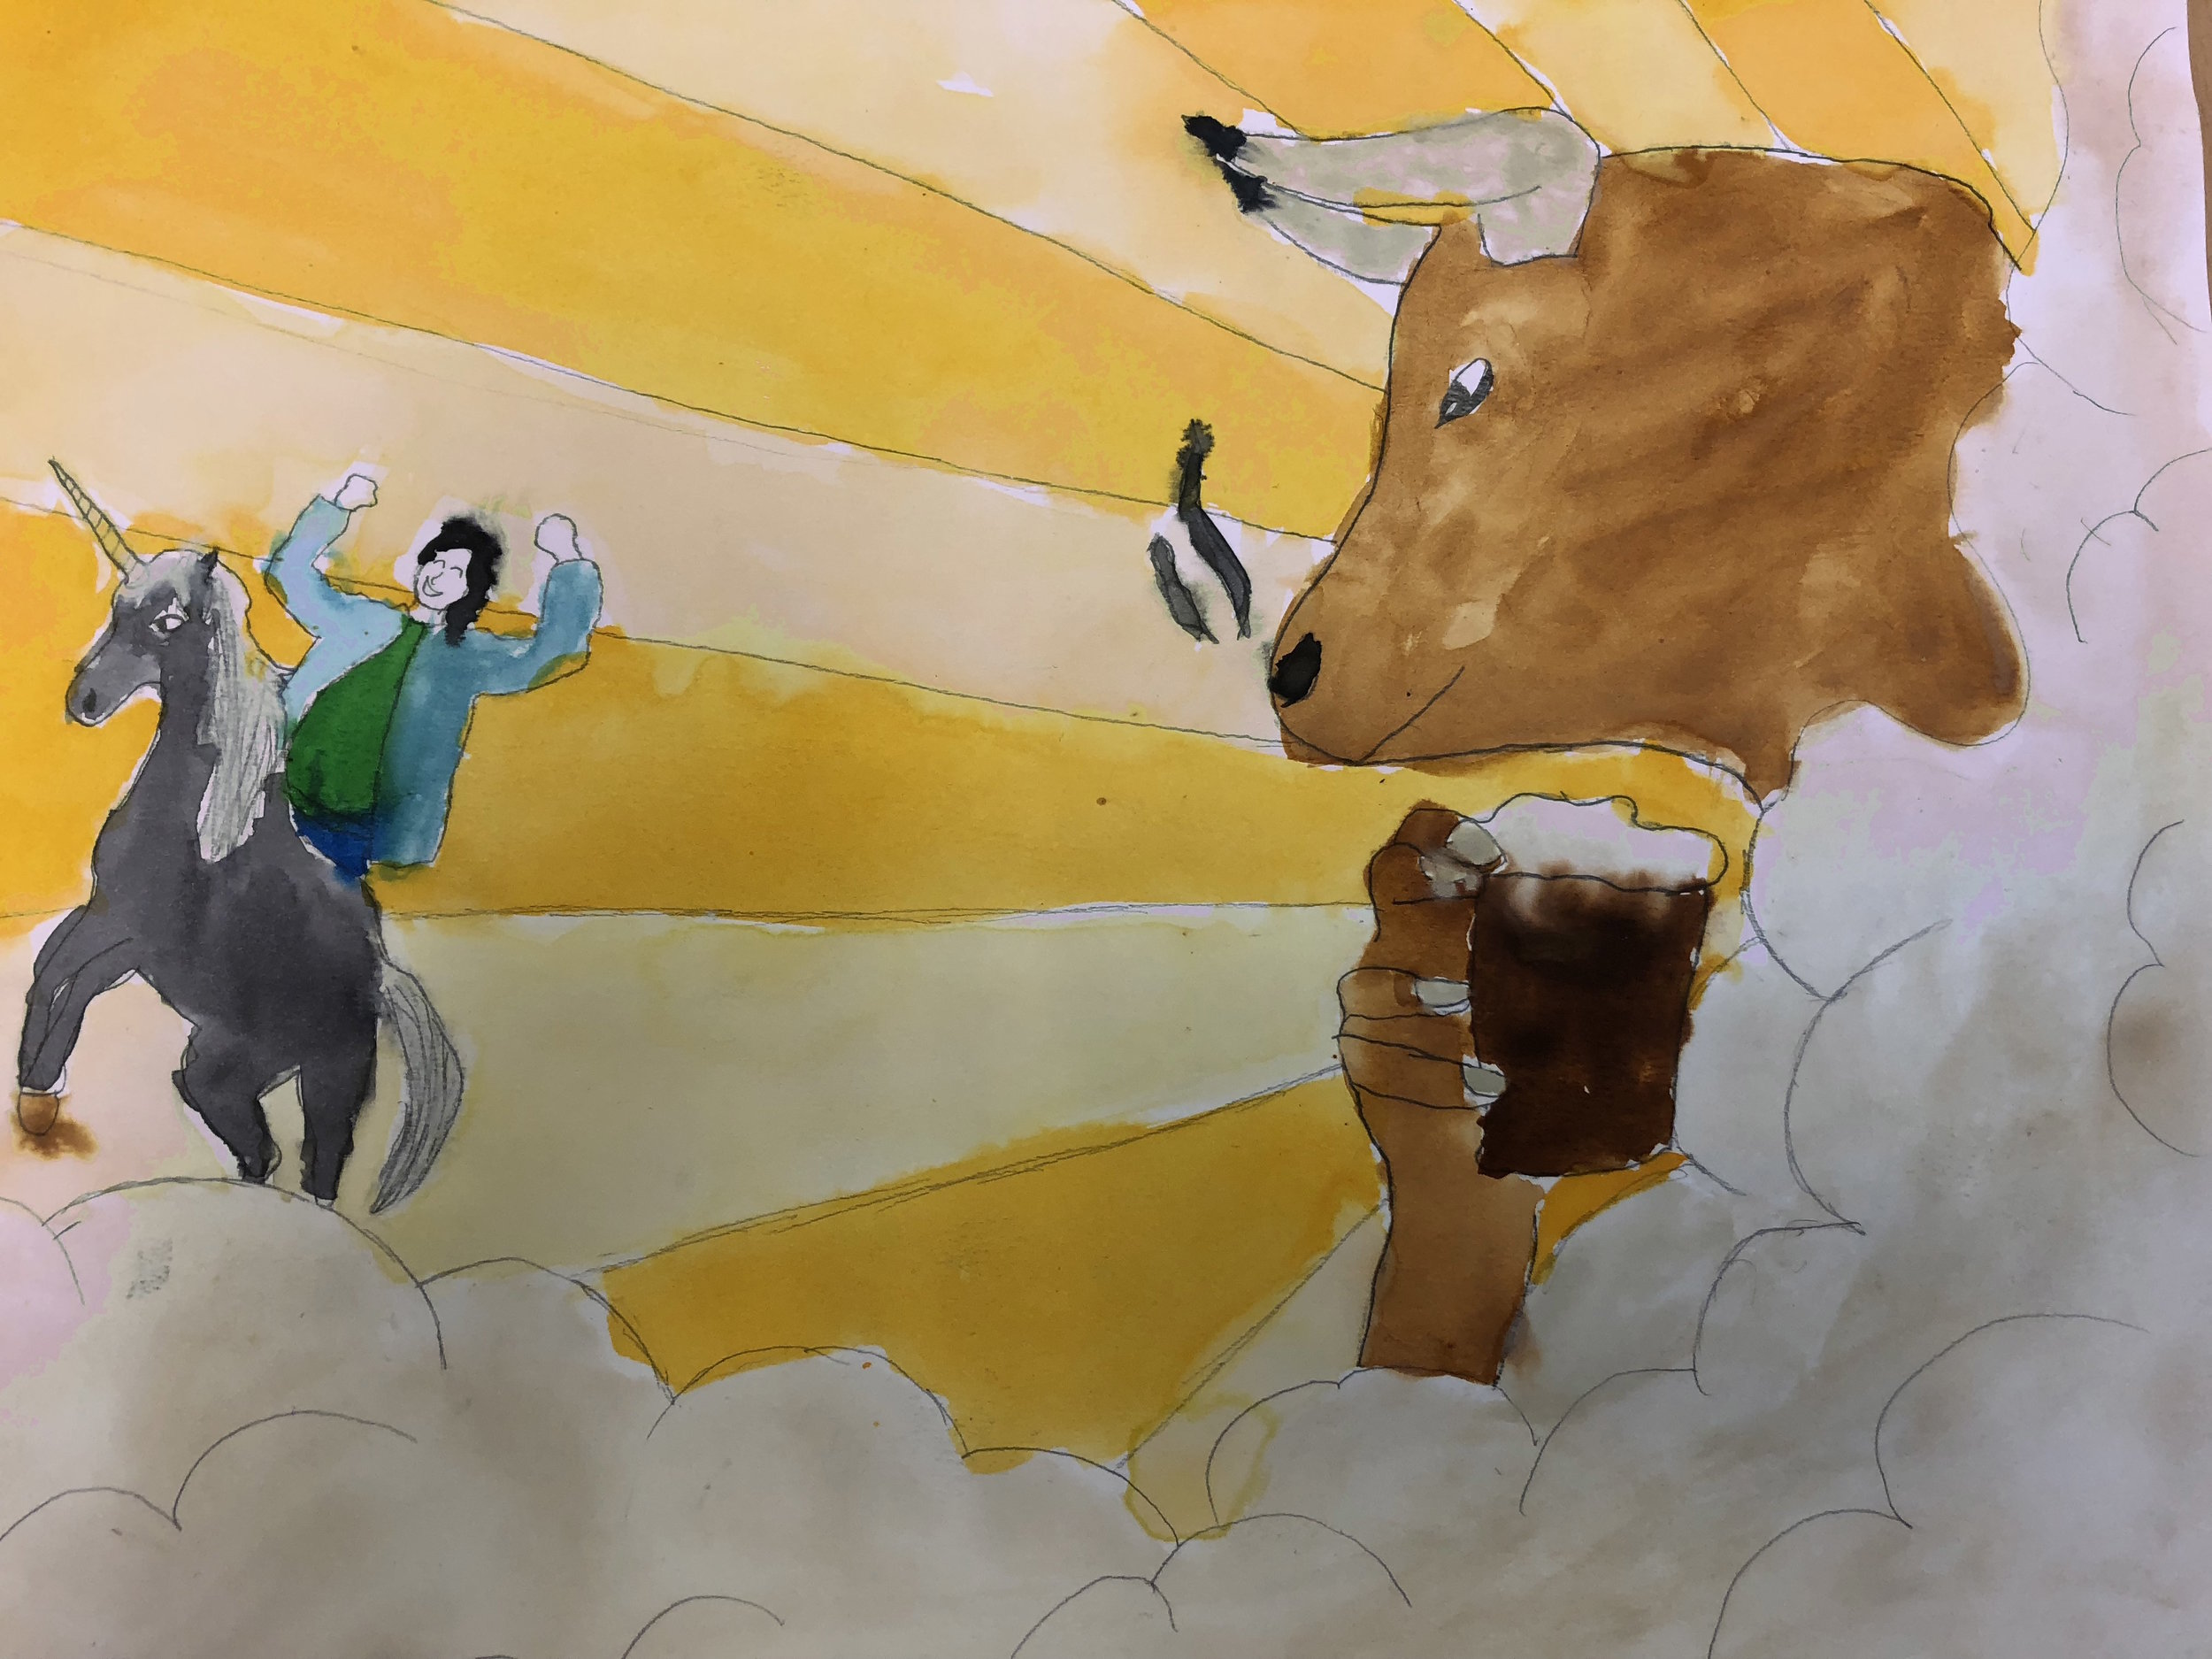 Student work of man riding unicorn and bull drinking from glass in the clouds